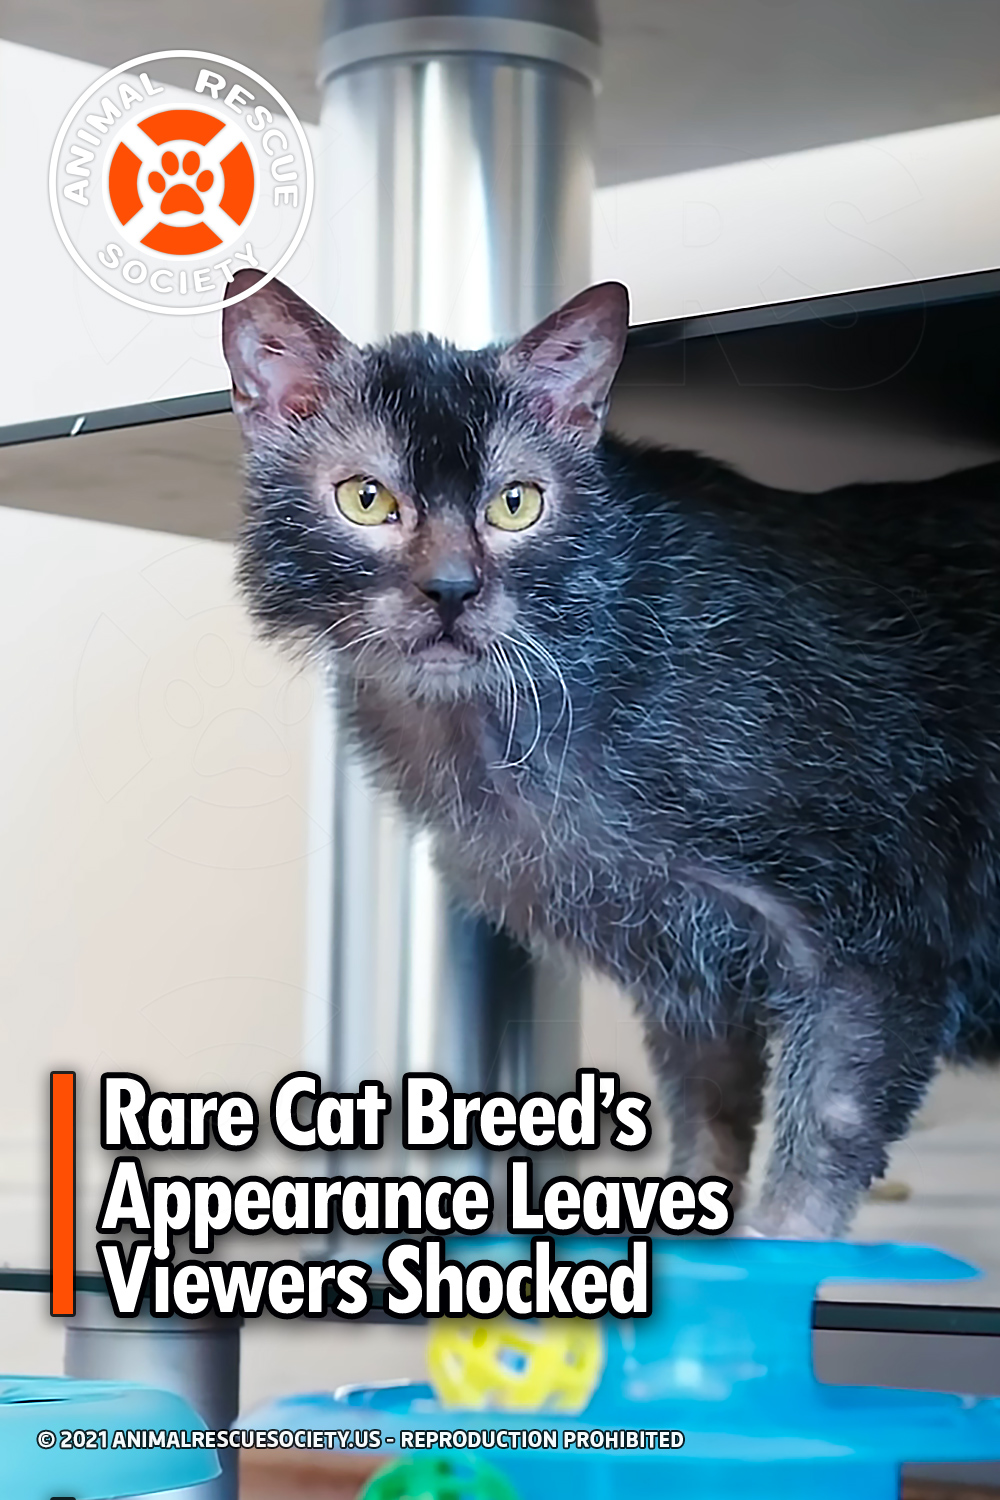 Rare Cat Breed's Appearance Leaves Viewers Shocked